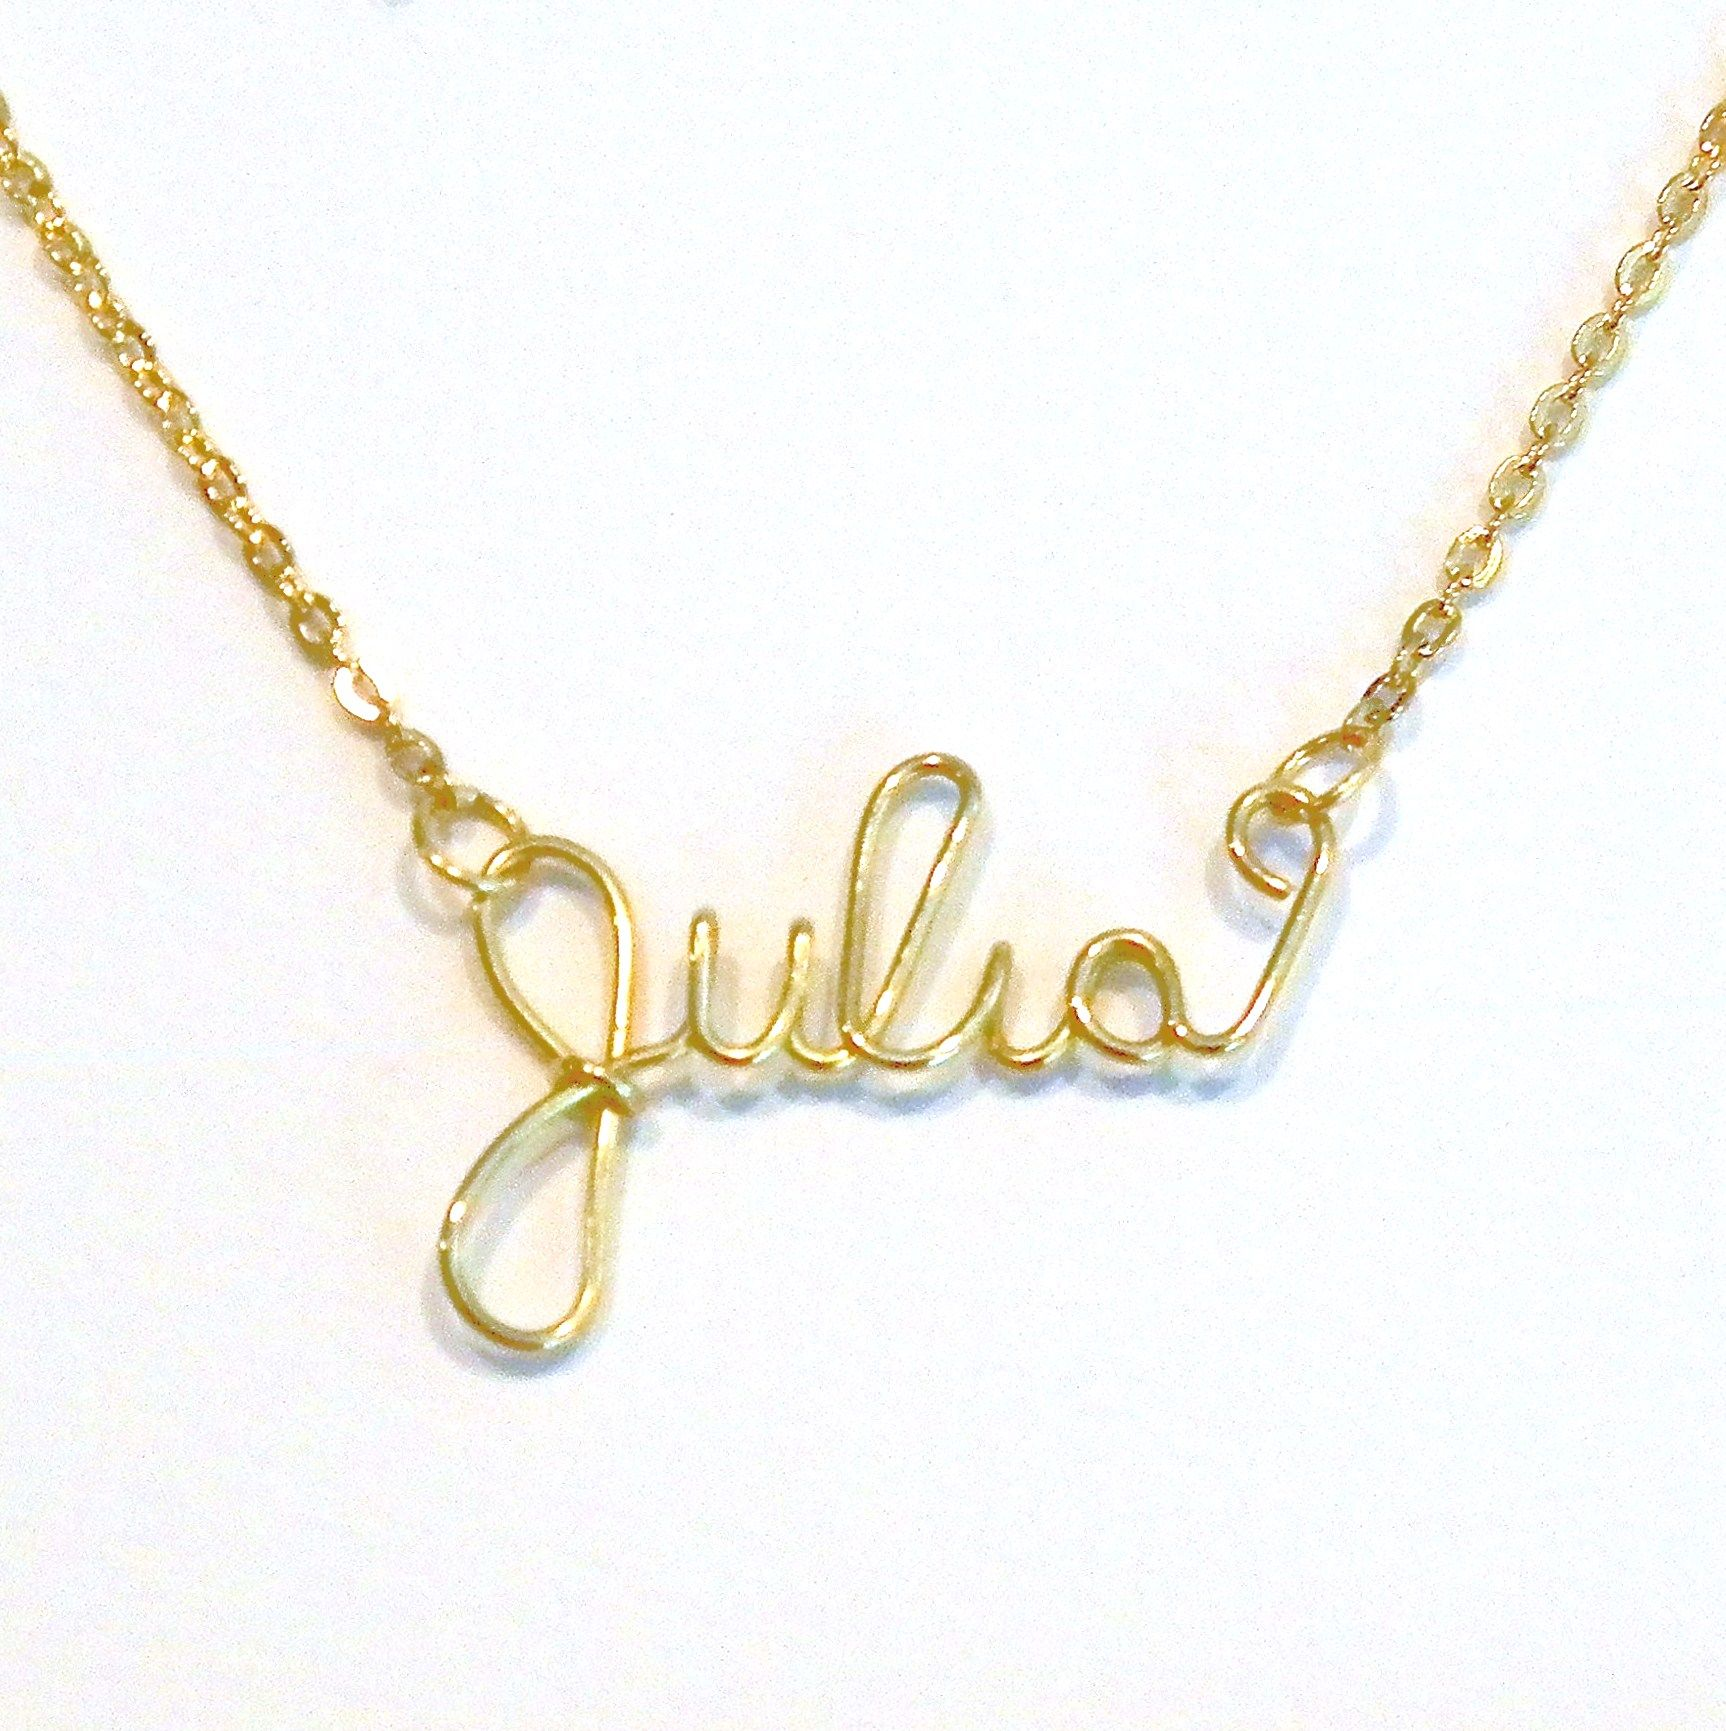 dp amazon com name l jewelry customized aolo handcrafted necklace hannah cursive dainty